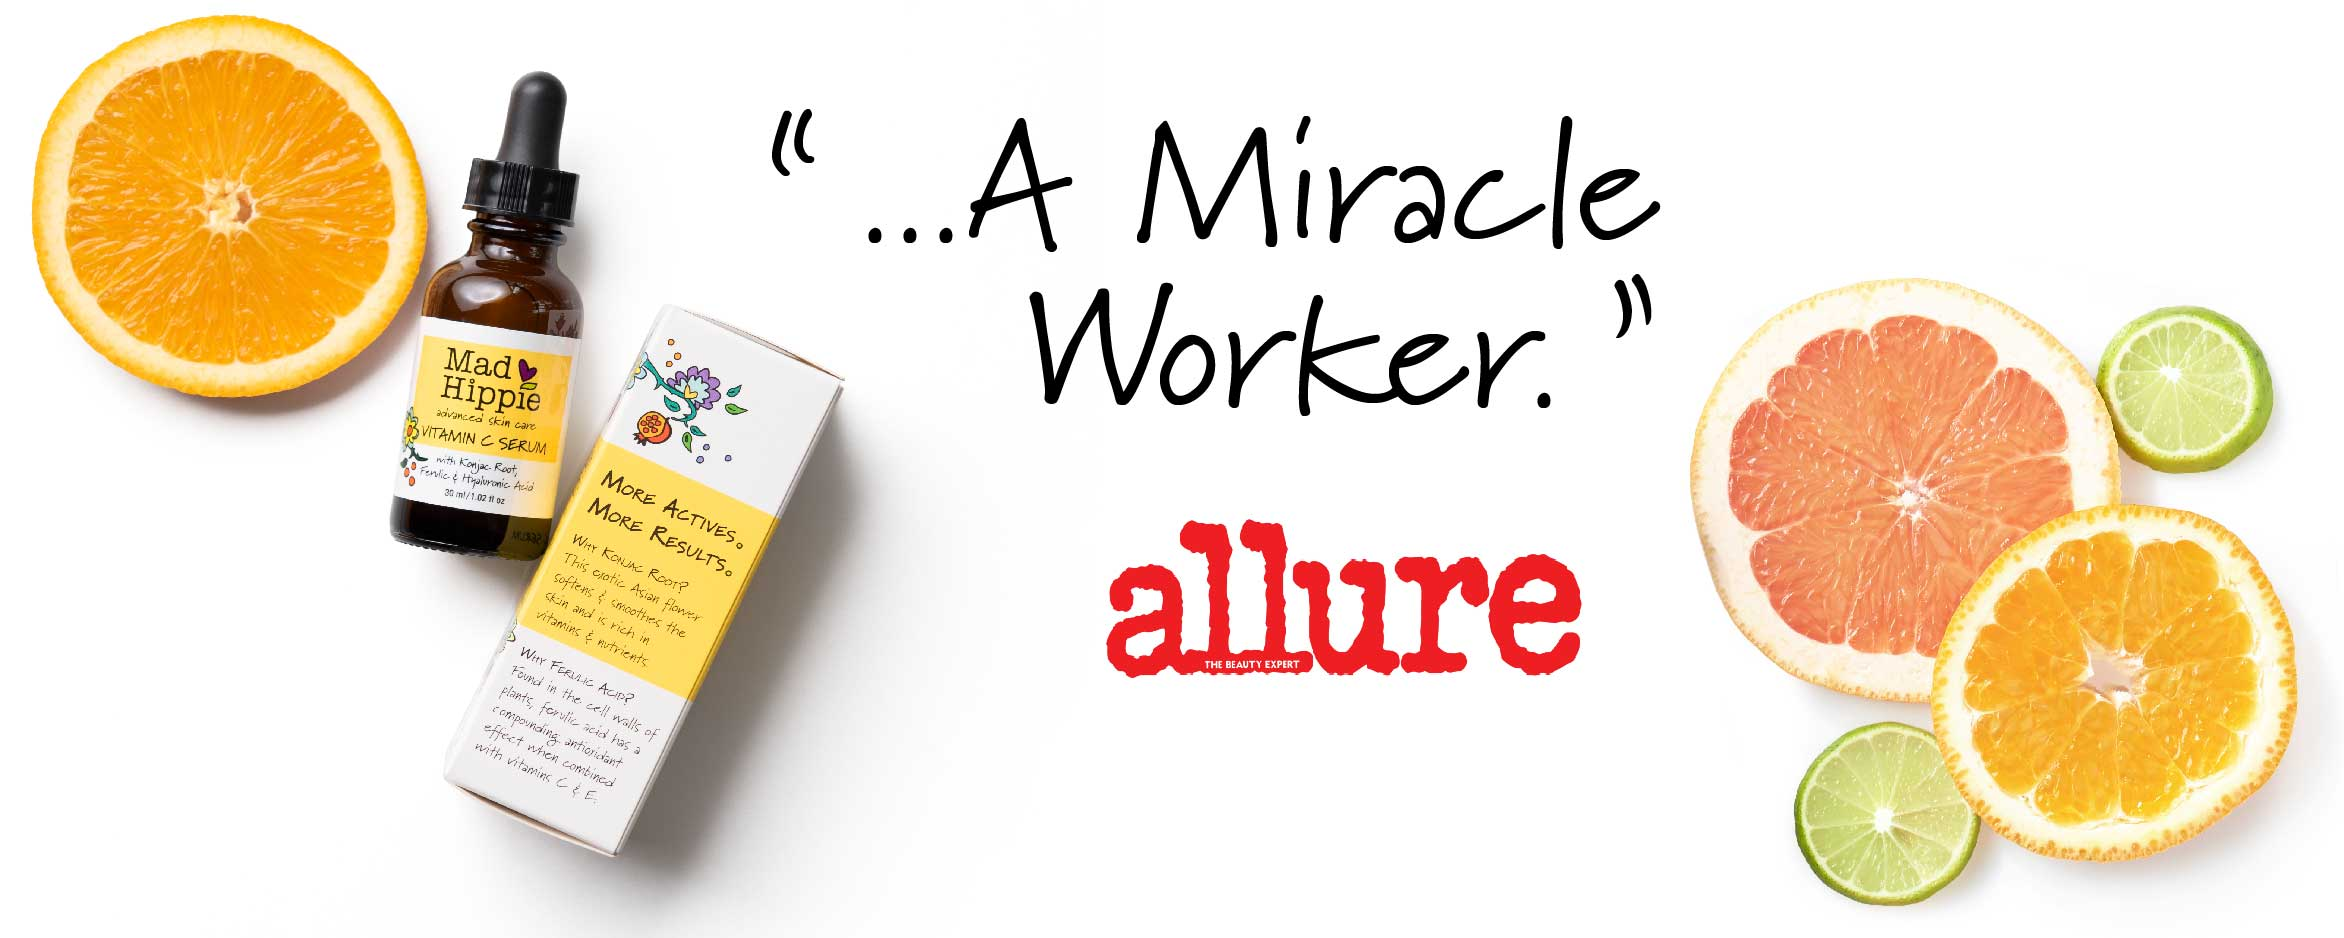 A maricle worker, - Allure